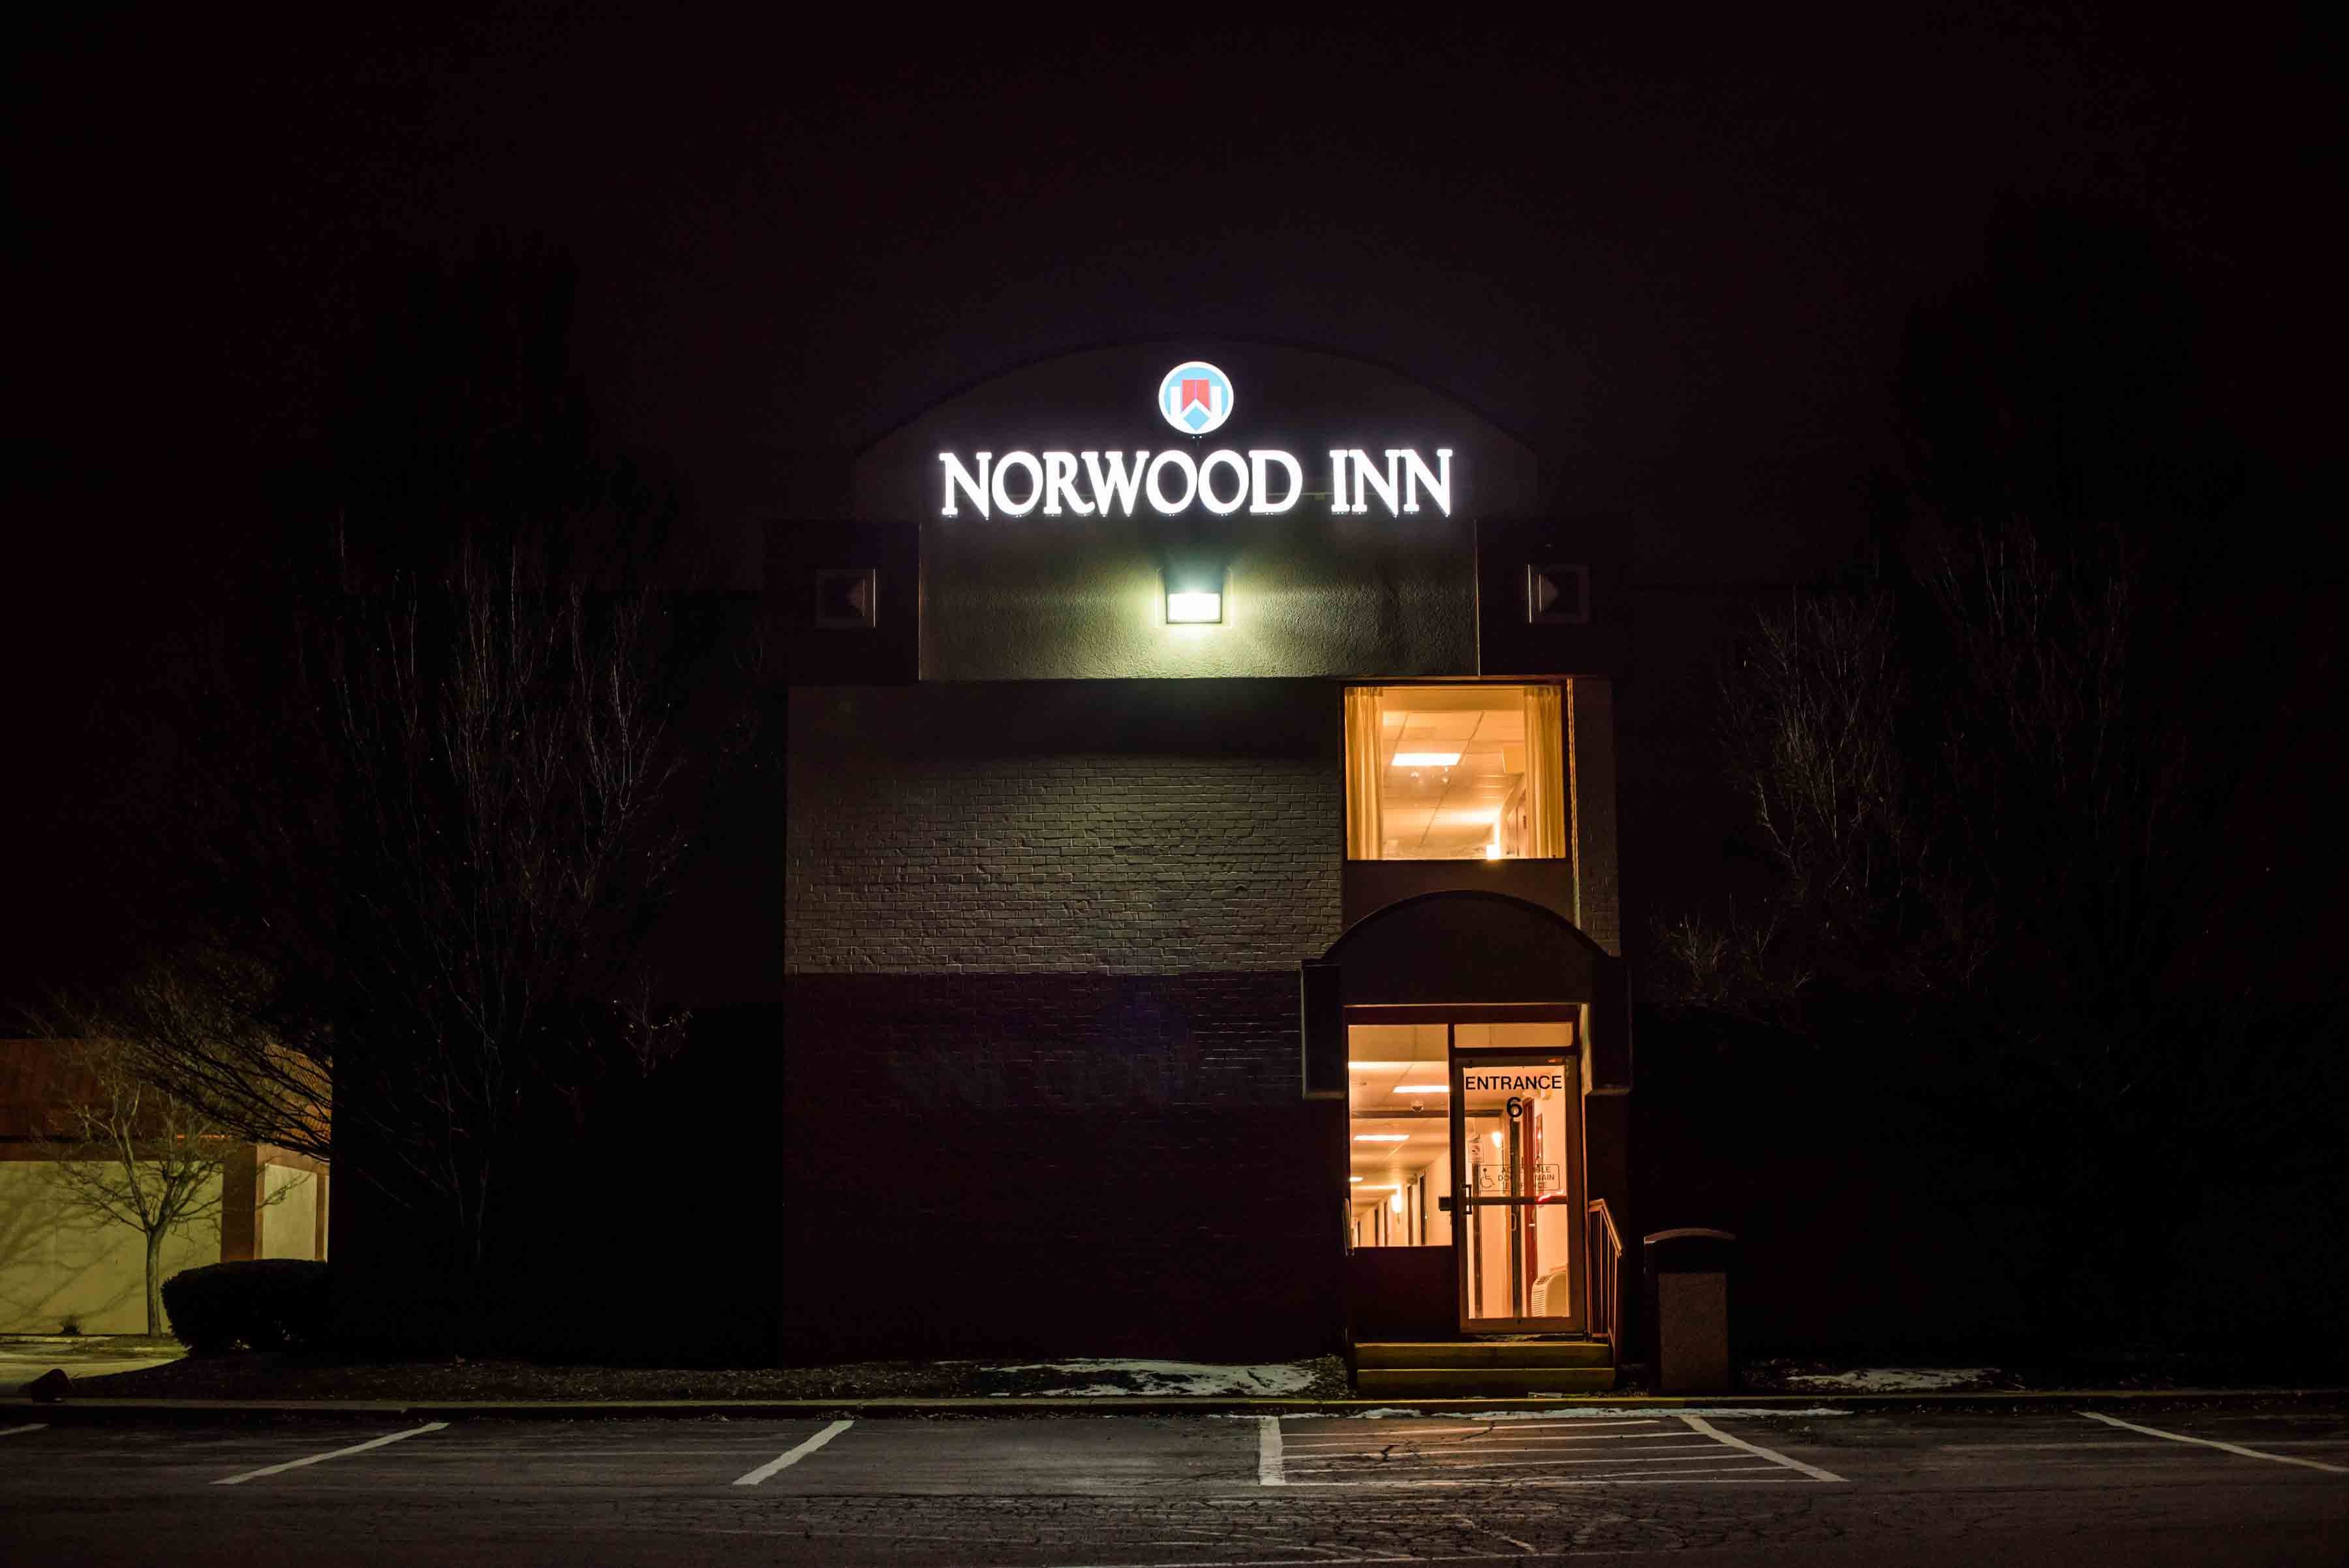 Norwood Inn